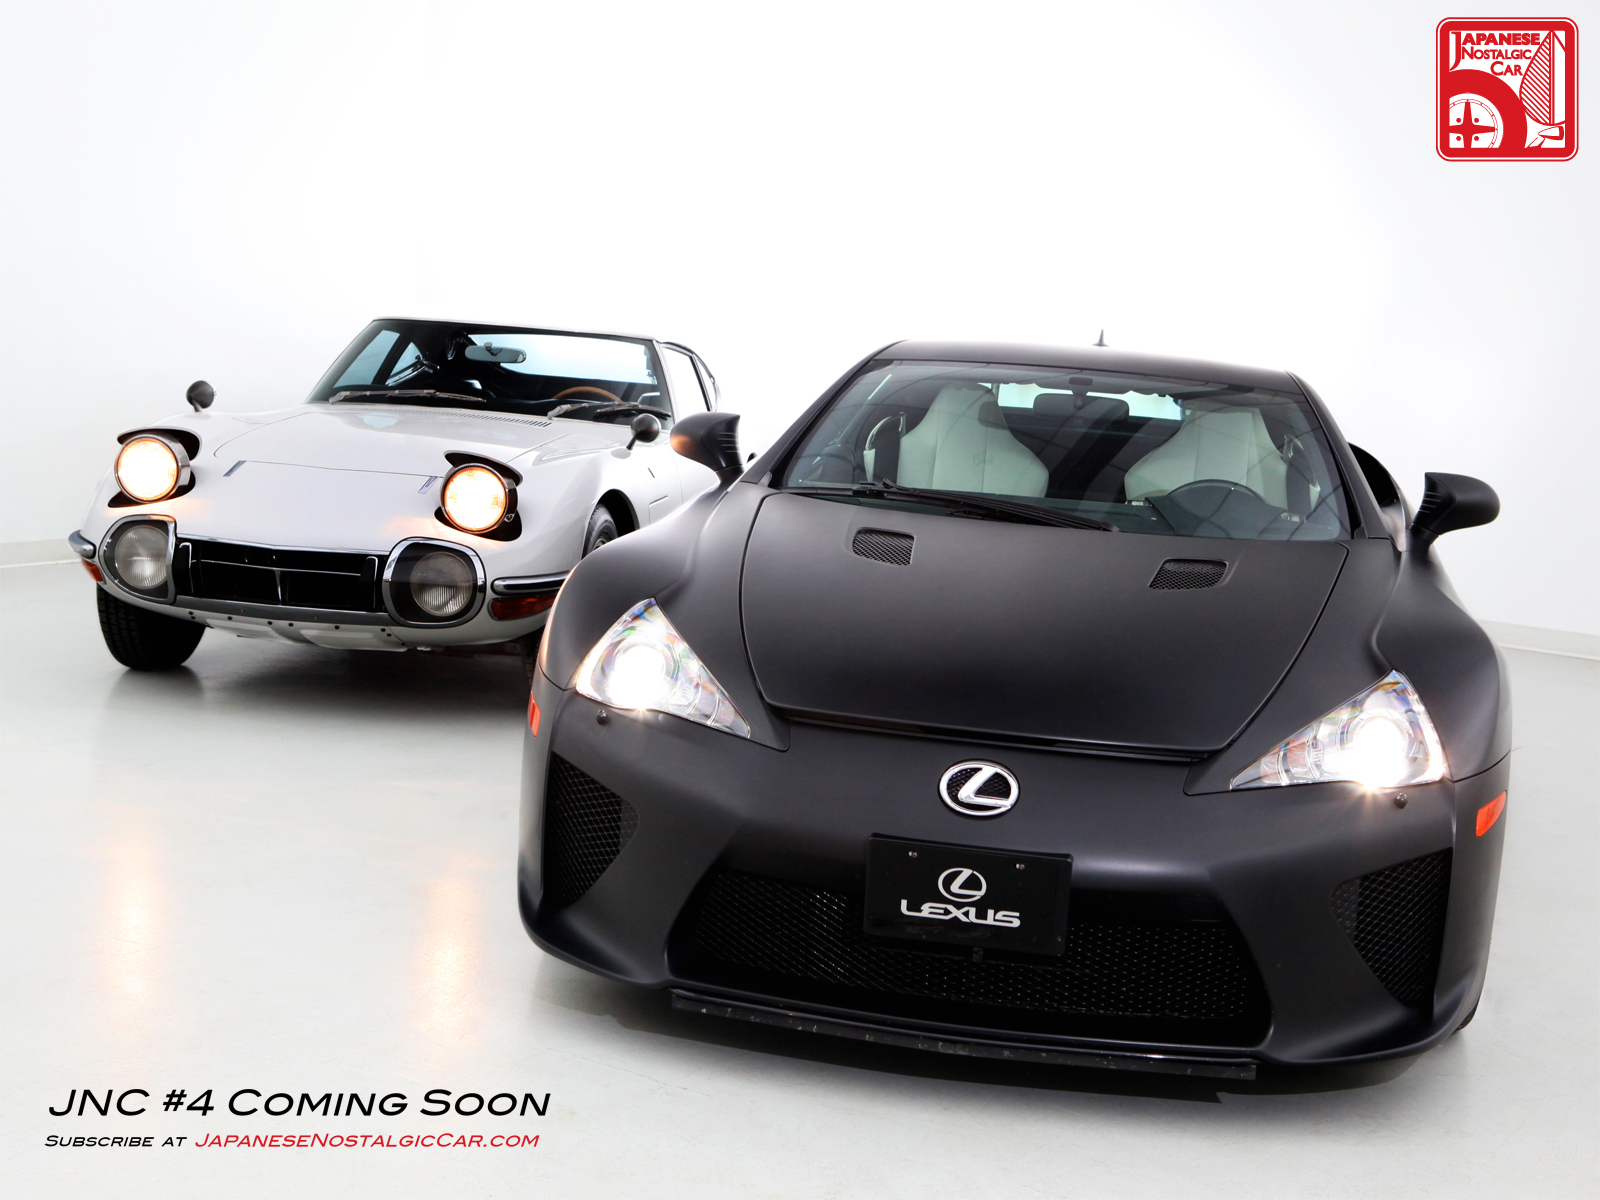 Wednesday Wall Jnc 4 Preview Lexus Lfa Amp Toyota 2000gt